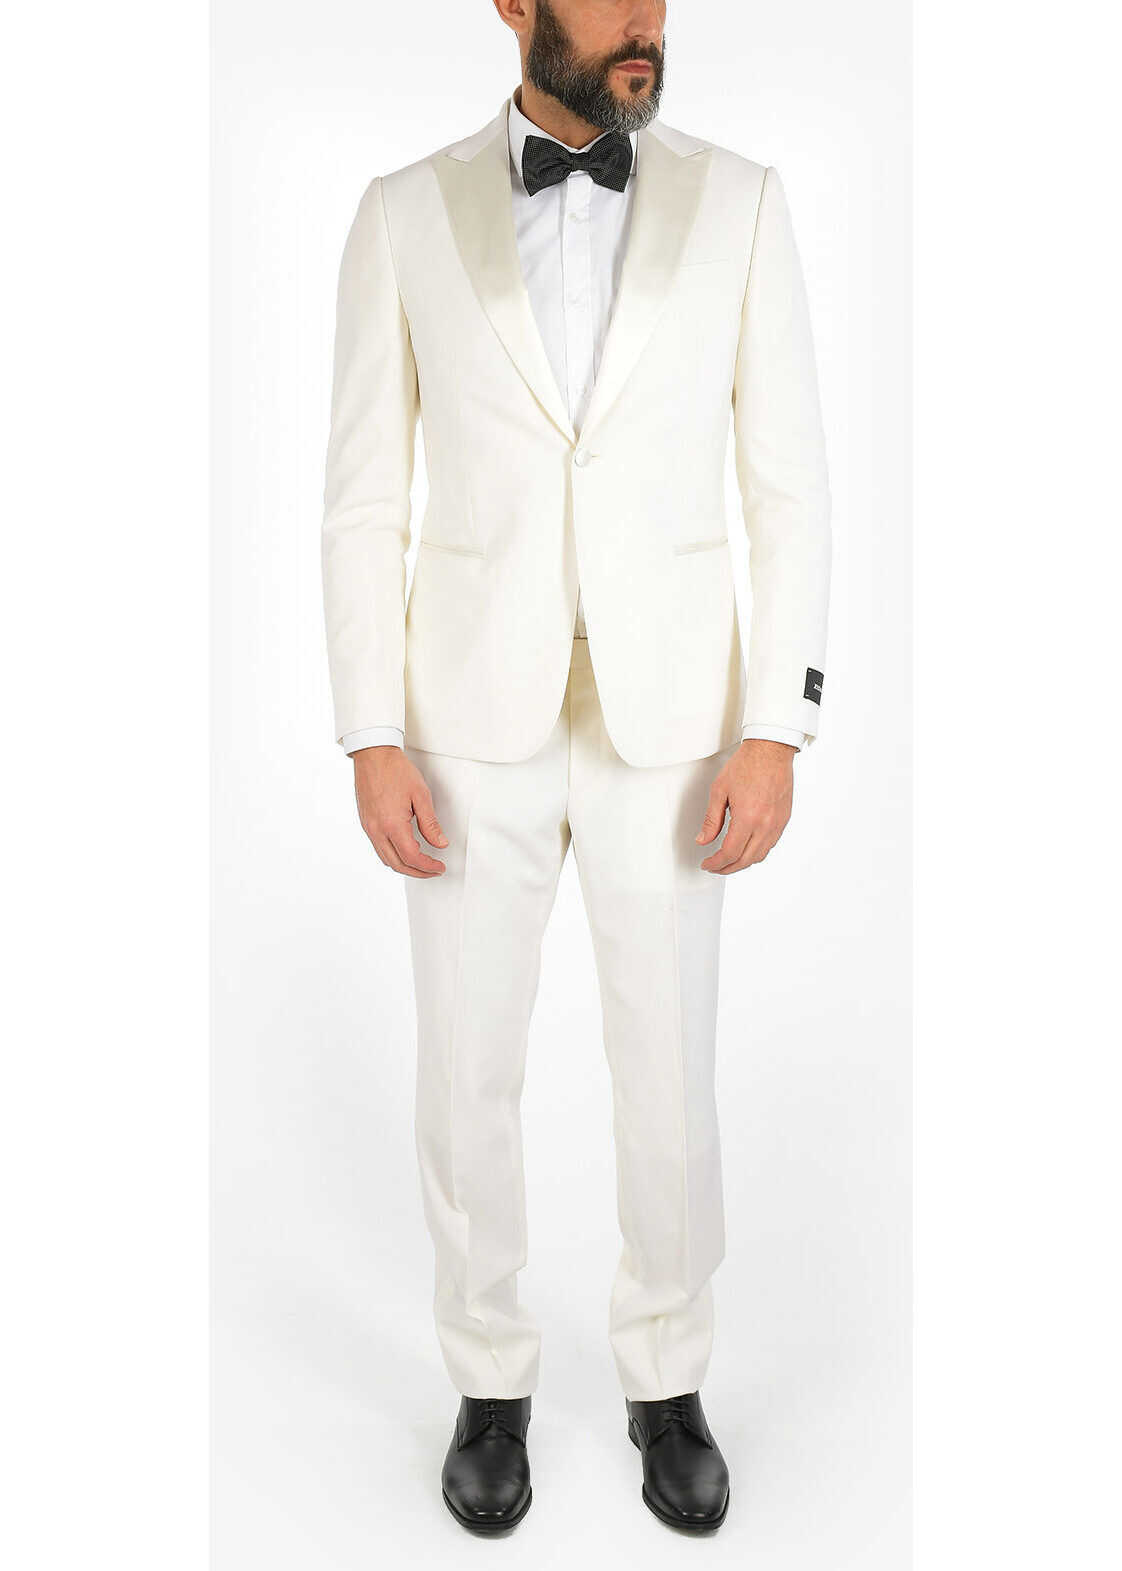 Z ZEGNA Wool 1 Button Suit with Peaked Lapel